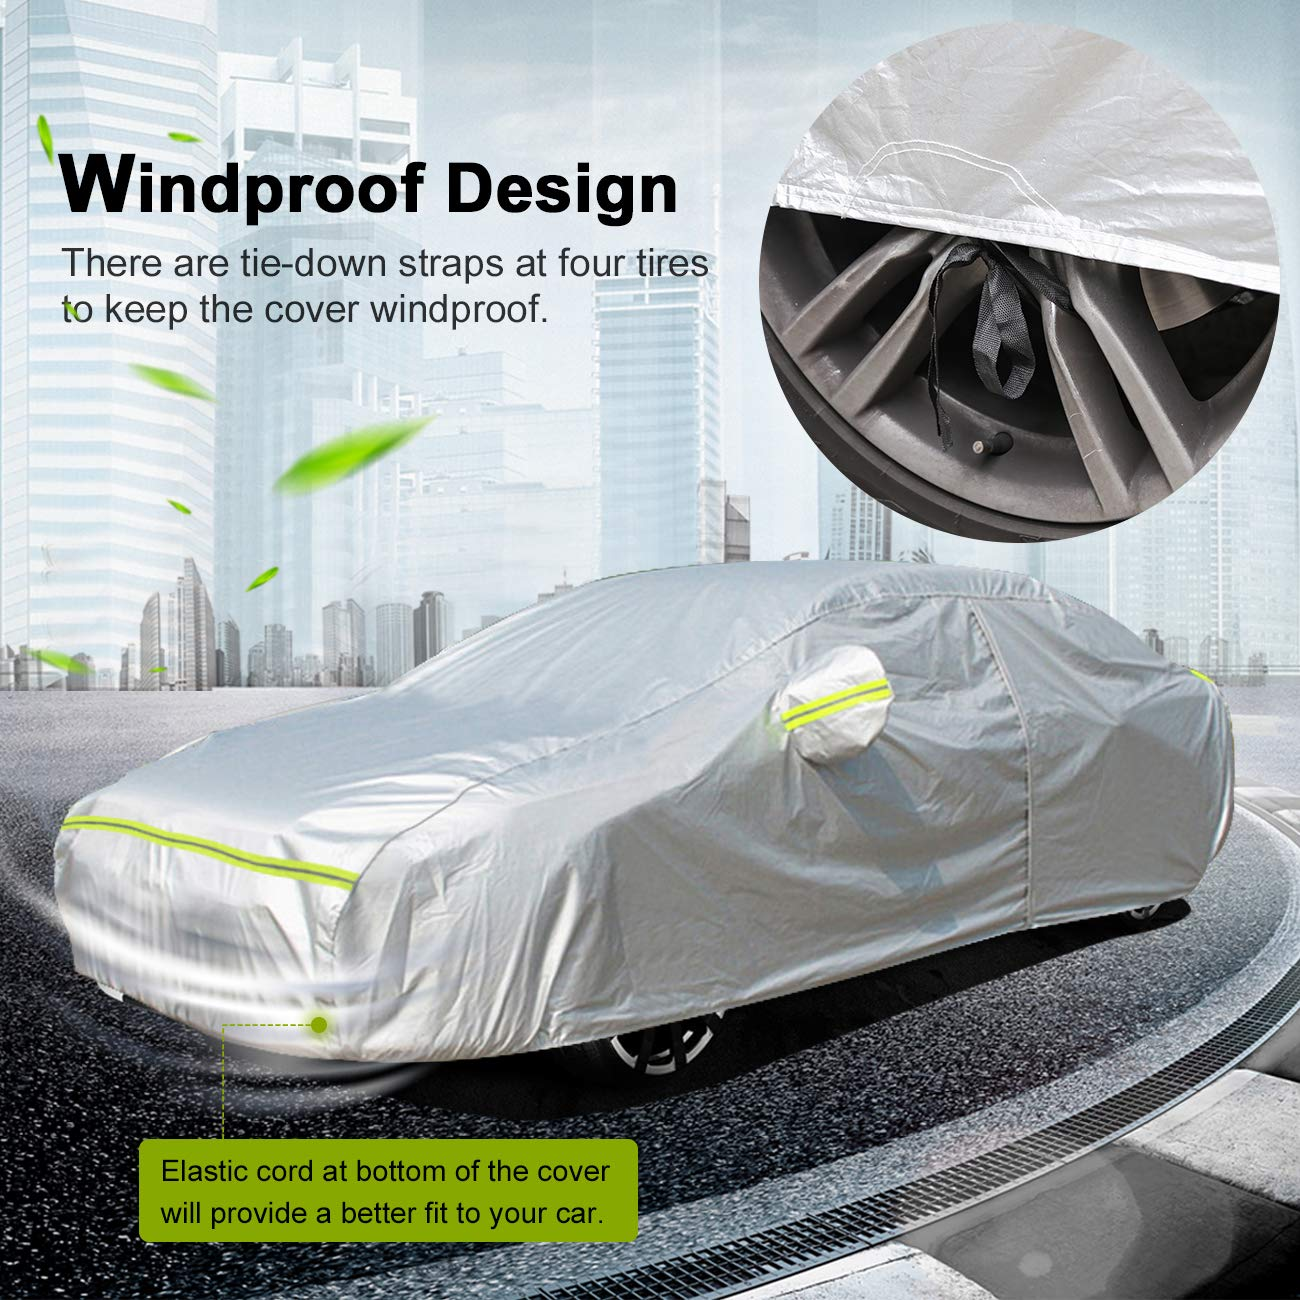 Favoto Car Cover Sedan Cover Universal Fit 450-495 cm 5 Layer Heavy Duty Outdoor UV Protection Waterproof All Weather Dustproof Snowproof Windproof Scratch Resistant with Storage Bag Vehicle Cover